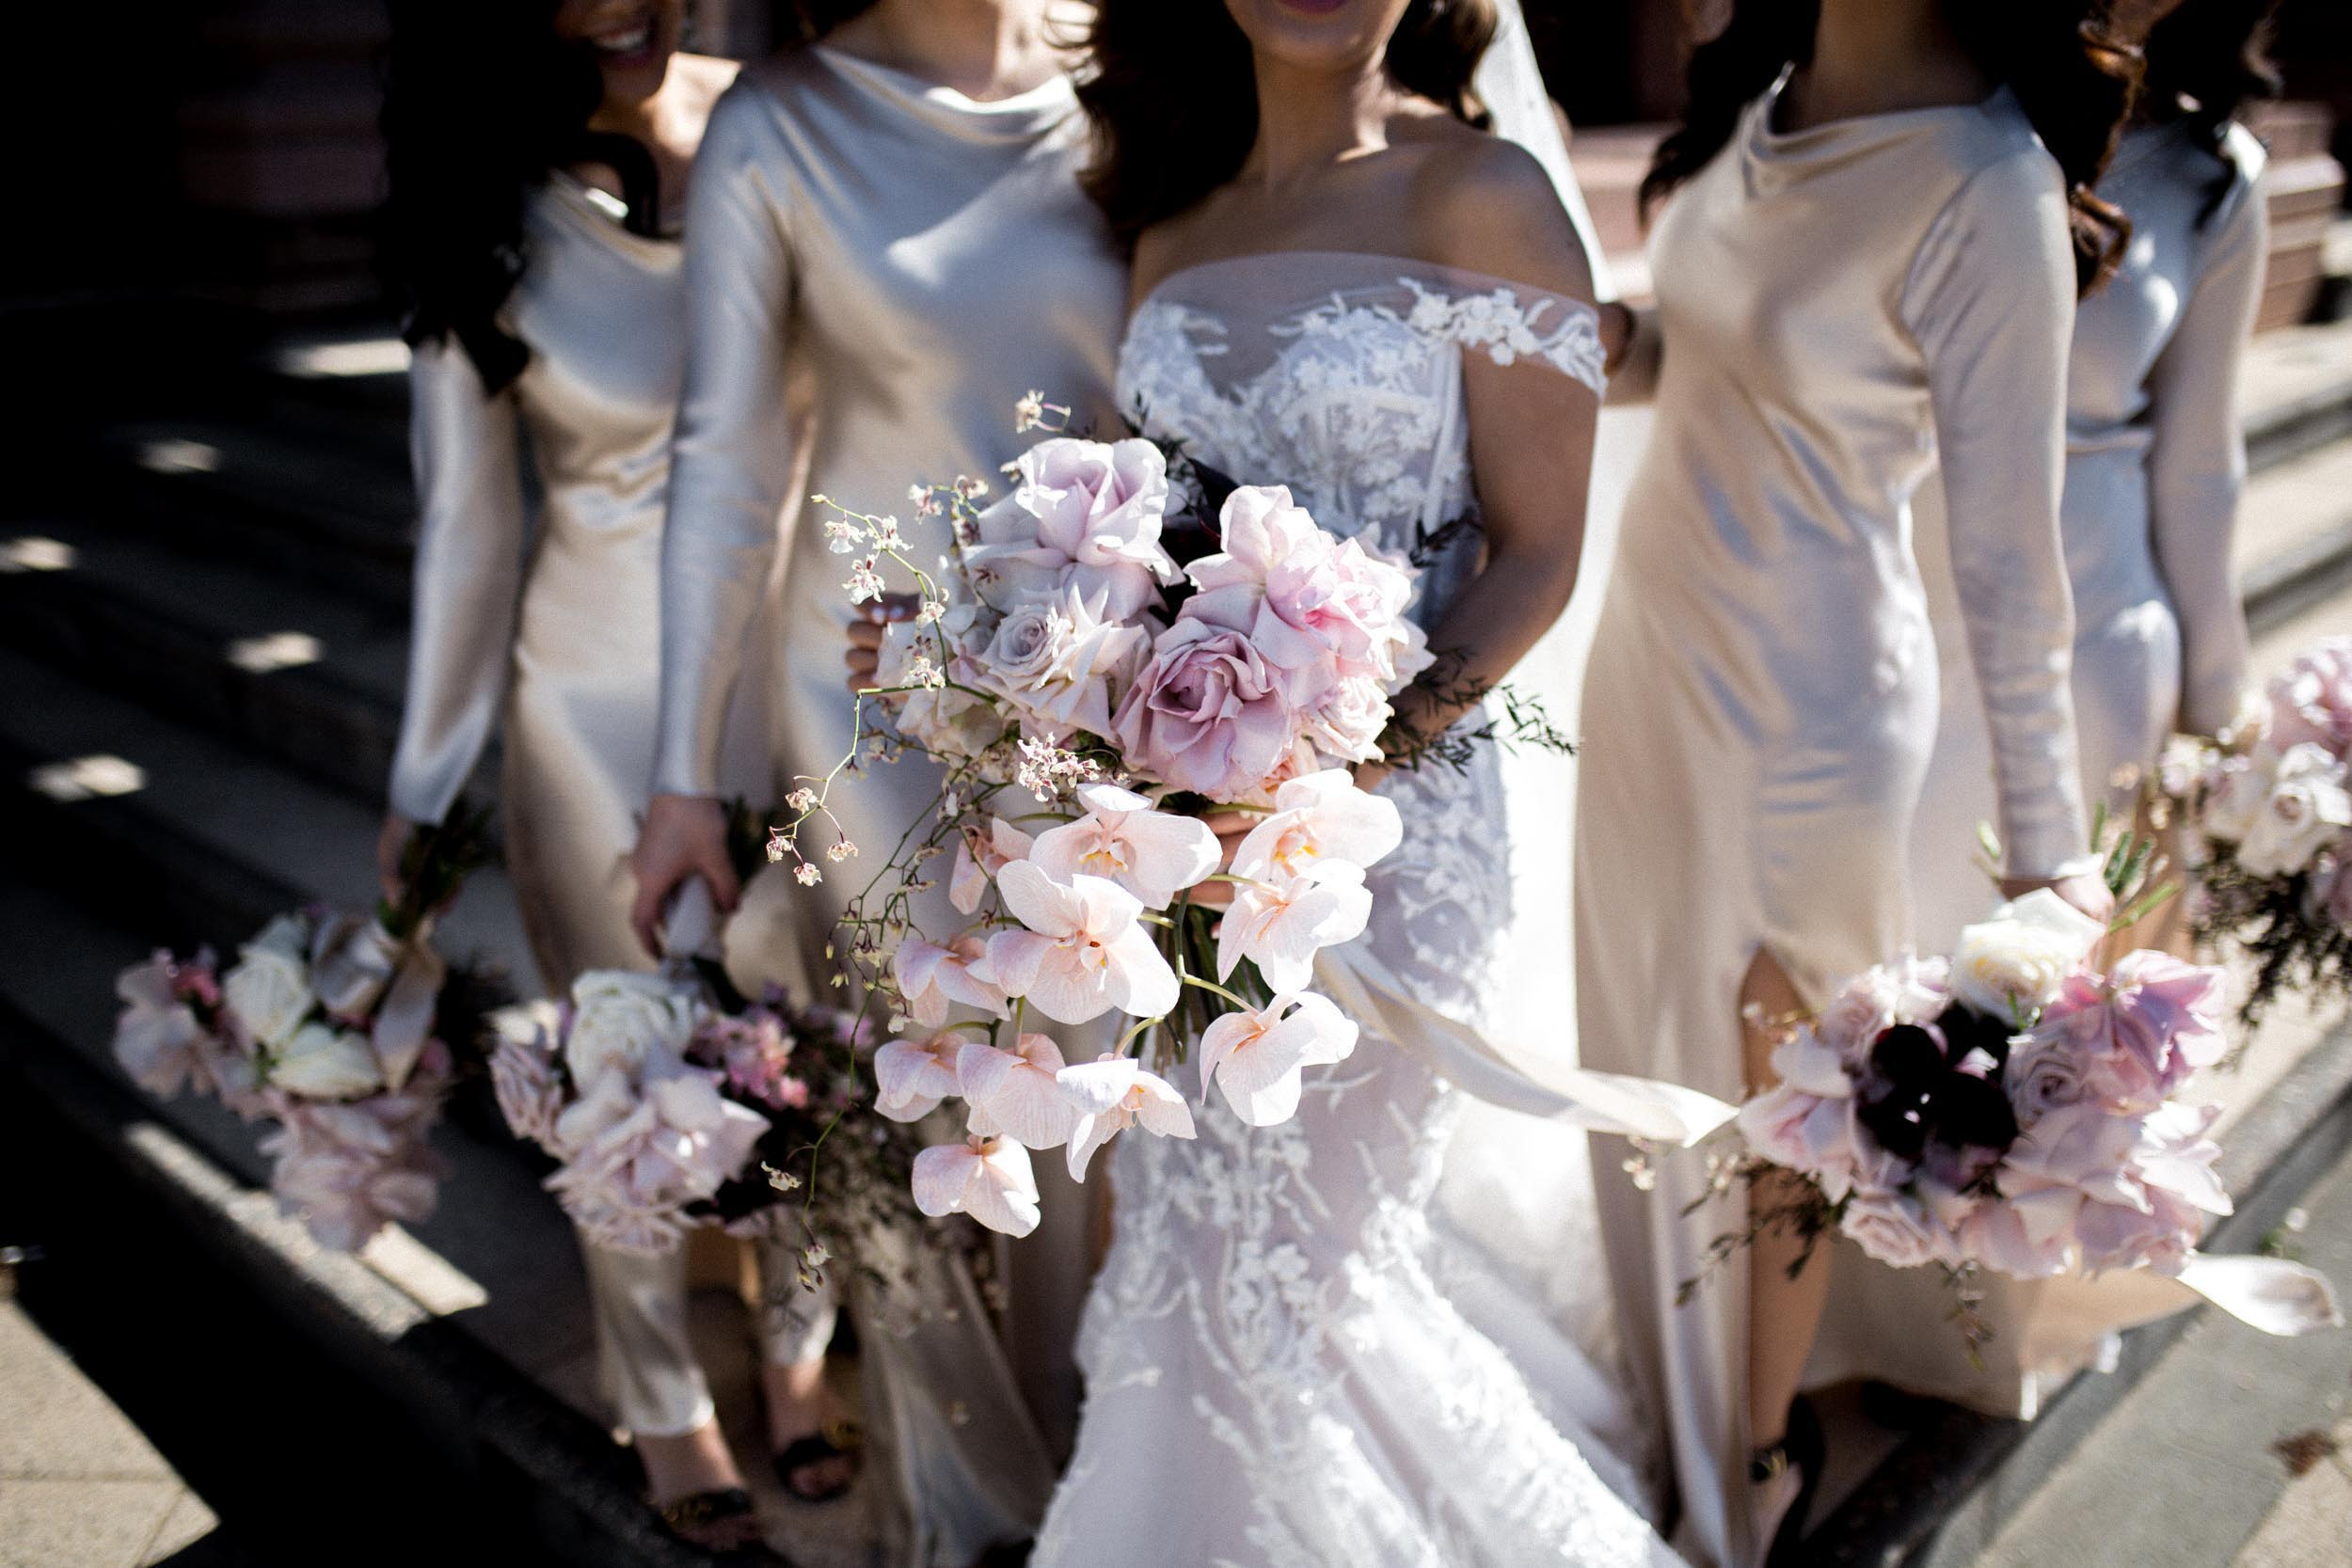 THE Flowers - The bouquets were made up of pastel sorbet coloured orchids and roses by Sydney florist, Poho Flowers.